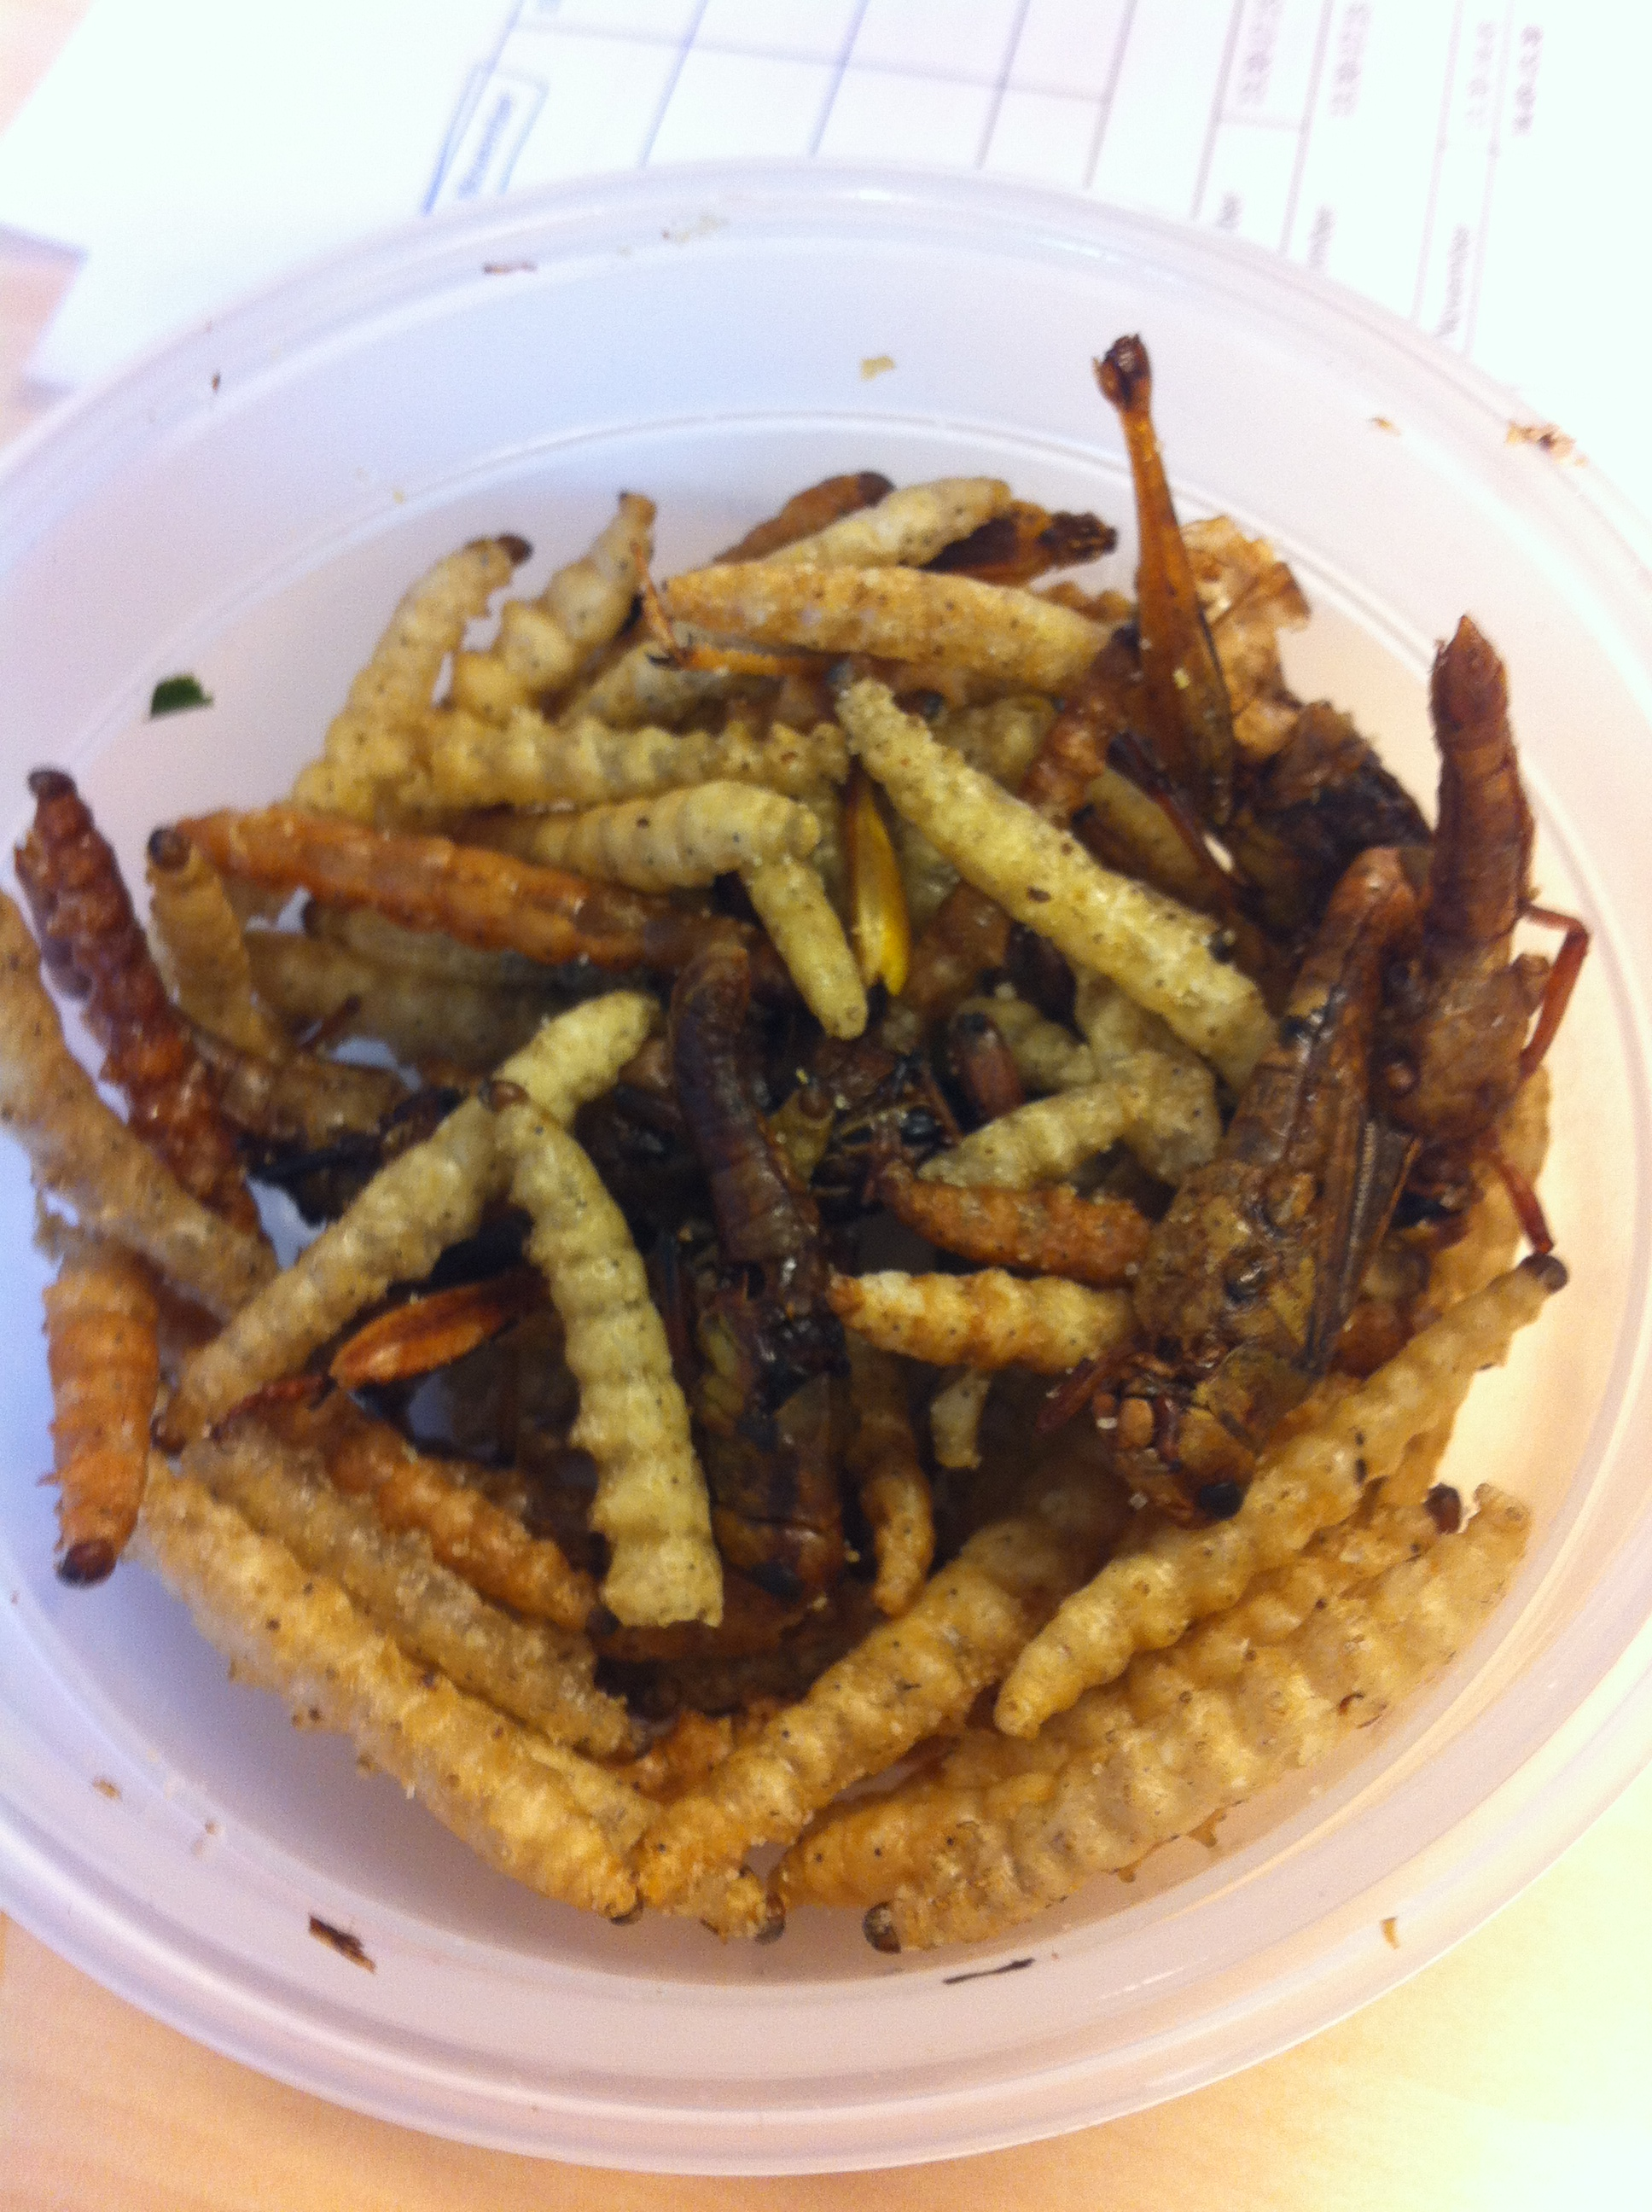 Mixed bugs for snacking